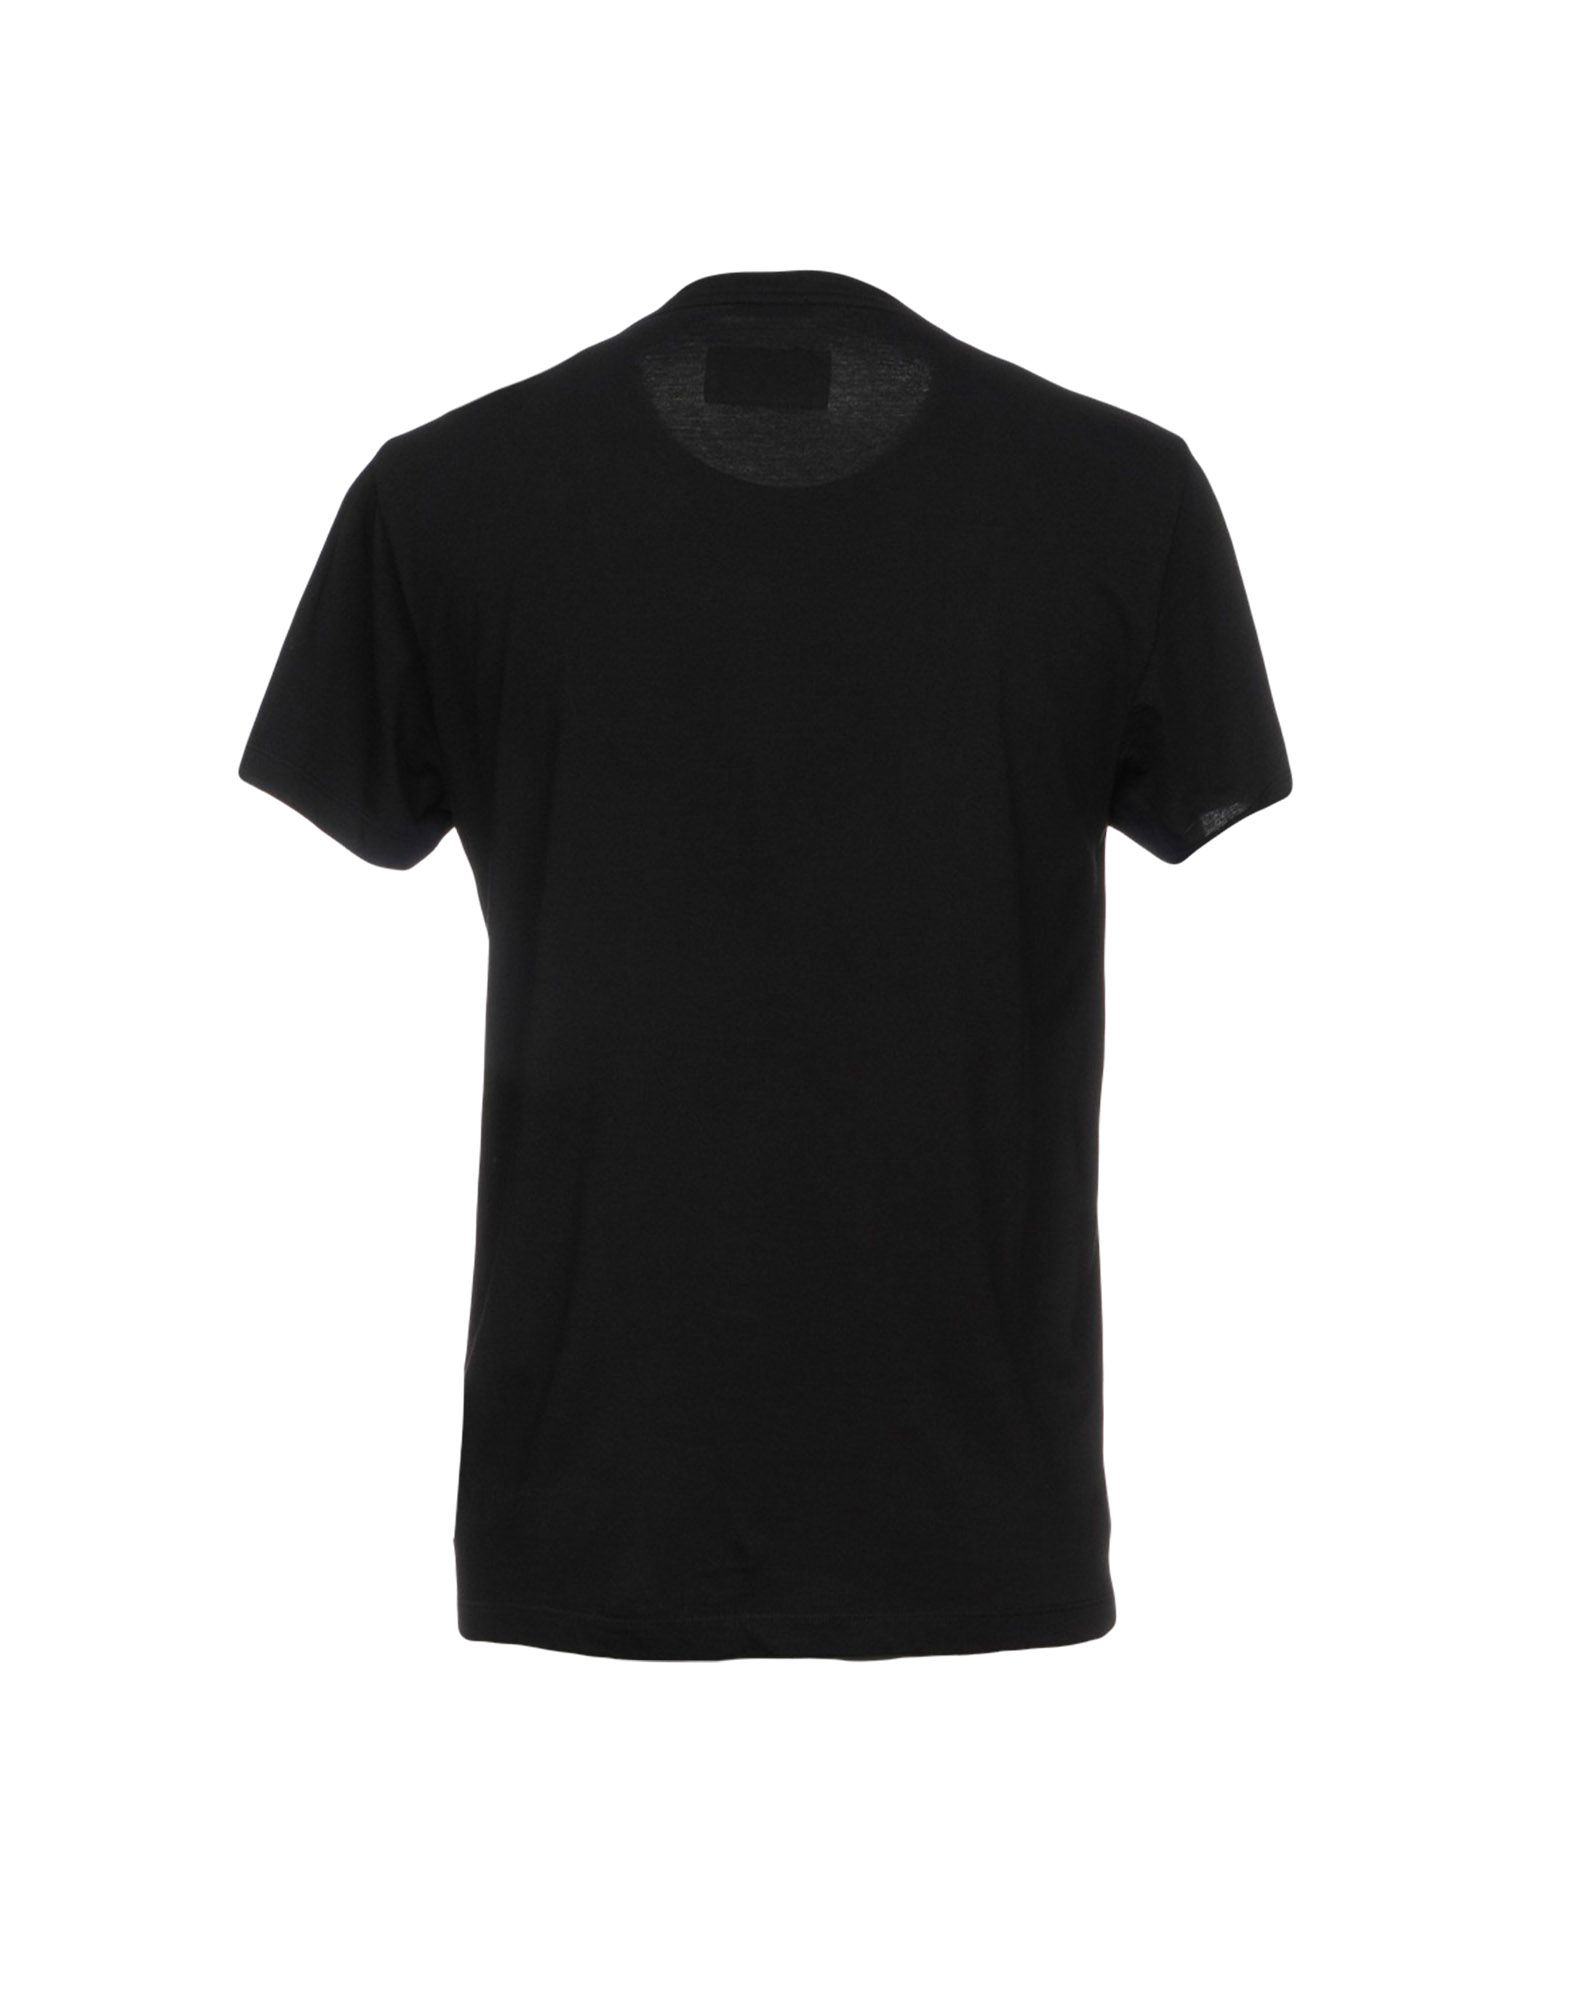 T-Shirt Marc Jacobs Uomo 12087405CR - 12087405CR Uomo f3a811